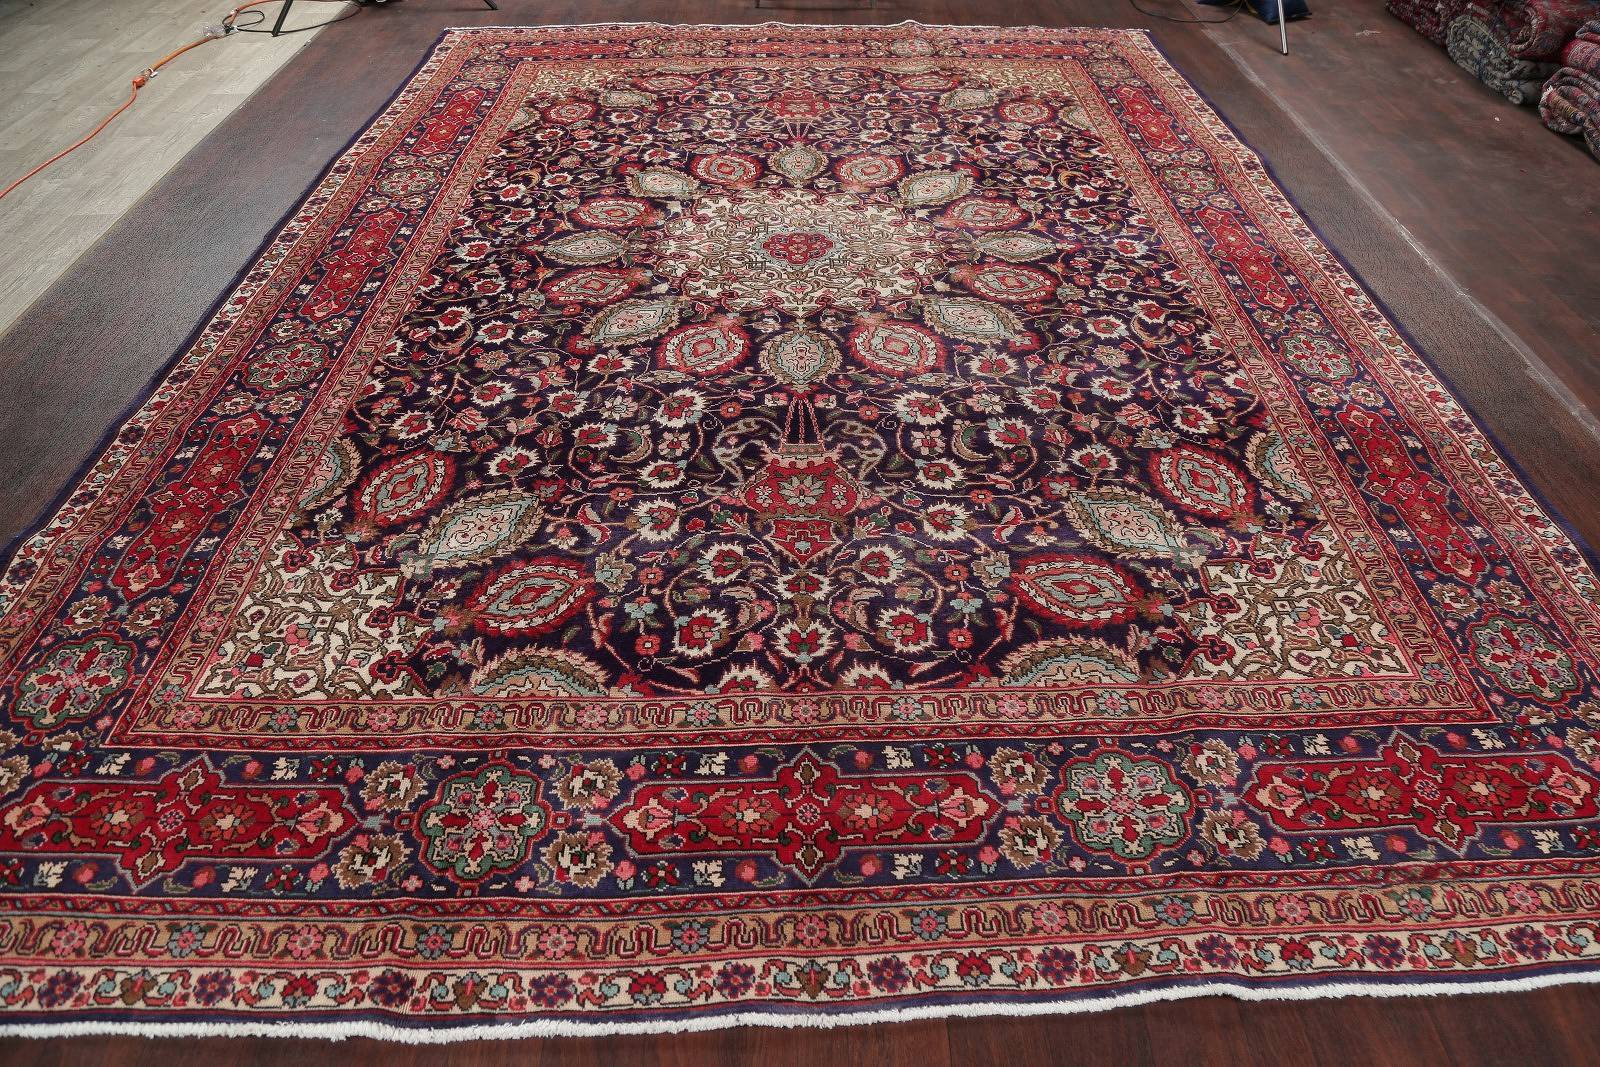 One-of-a-Kind Navy Blue Floral Tabriz Persian Hand-Knotted 9x13 Wool Area Rug